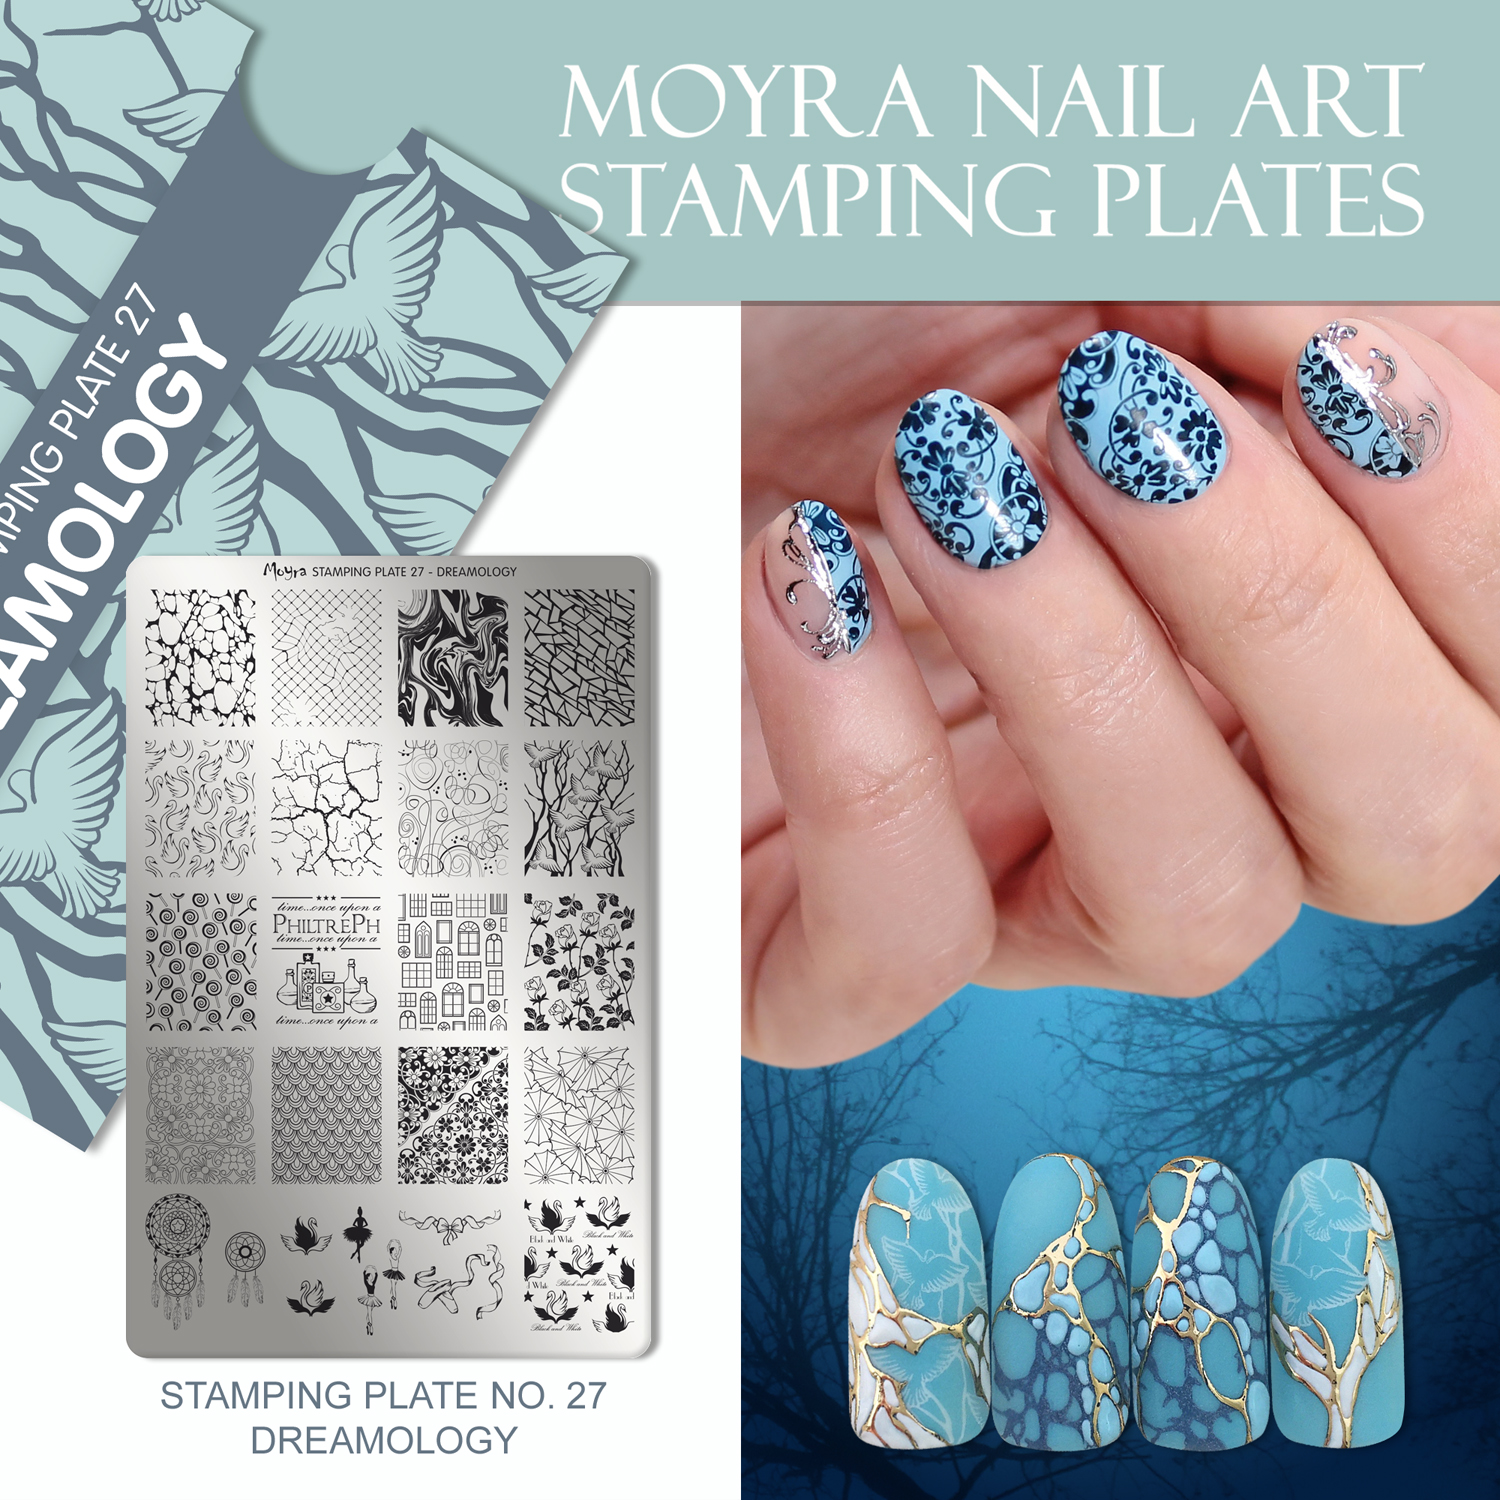 Nail design with Moyra stamping plate No. 27 Dreamology